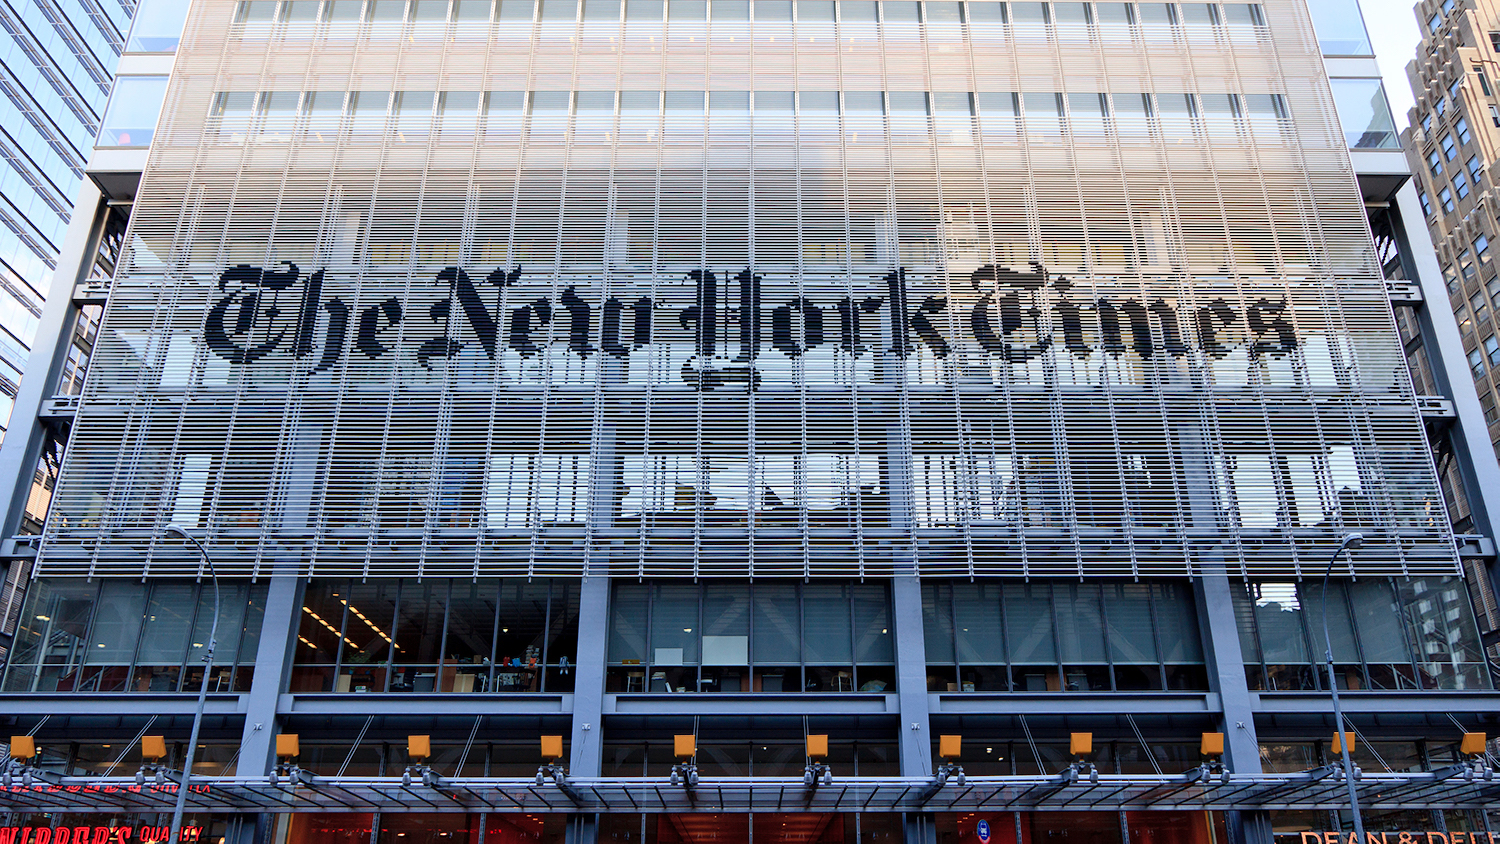 New York Times logo on building front